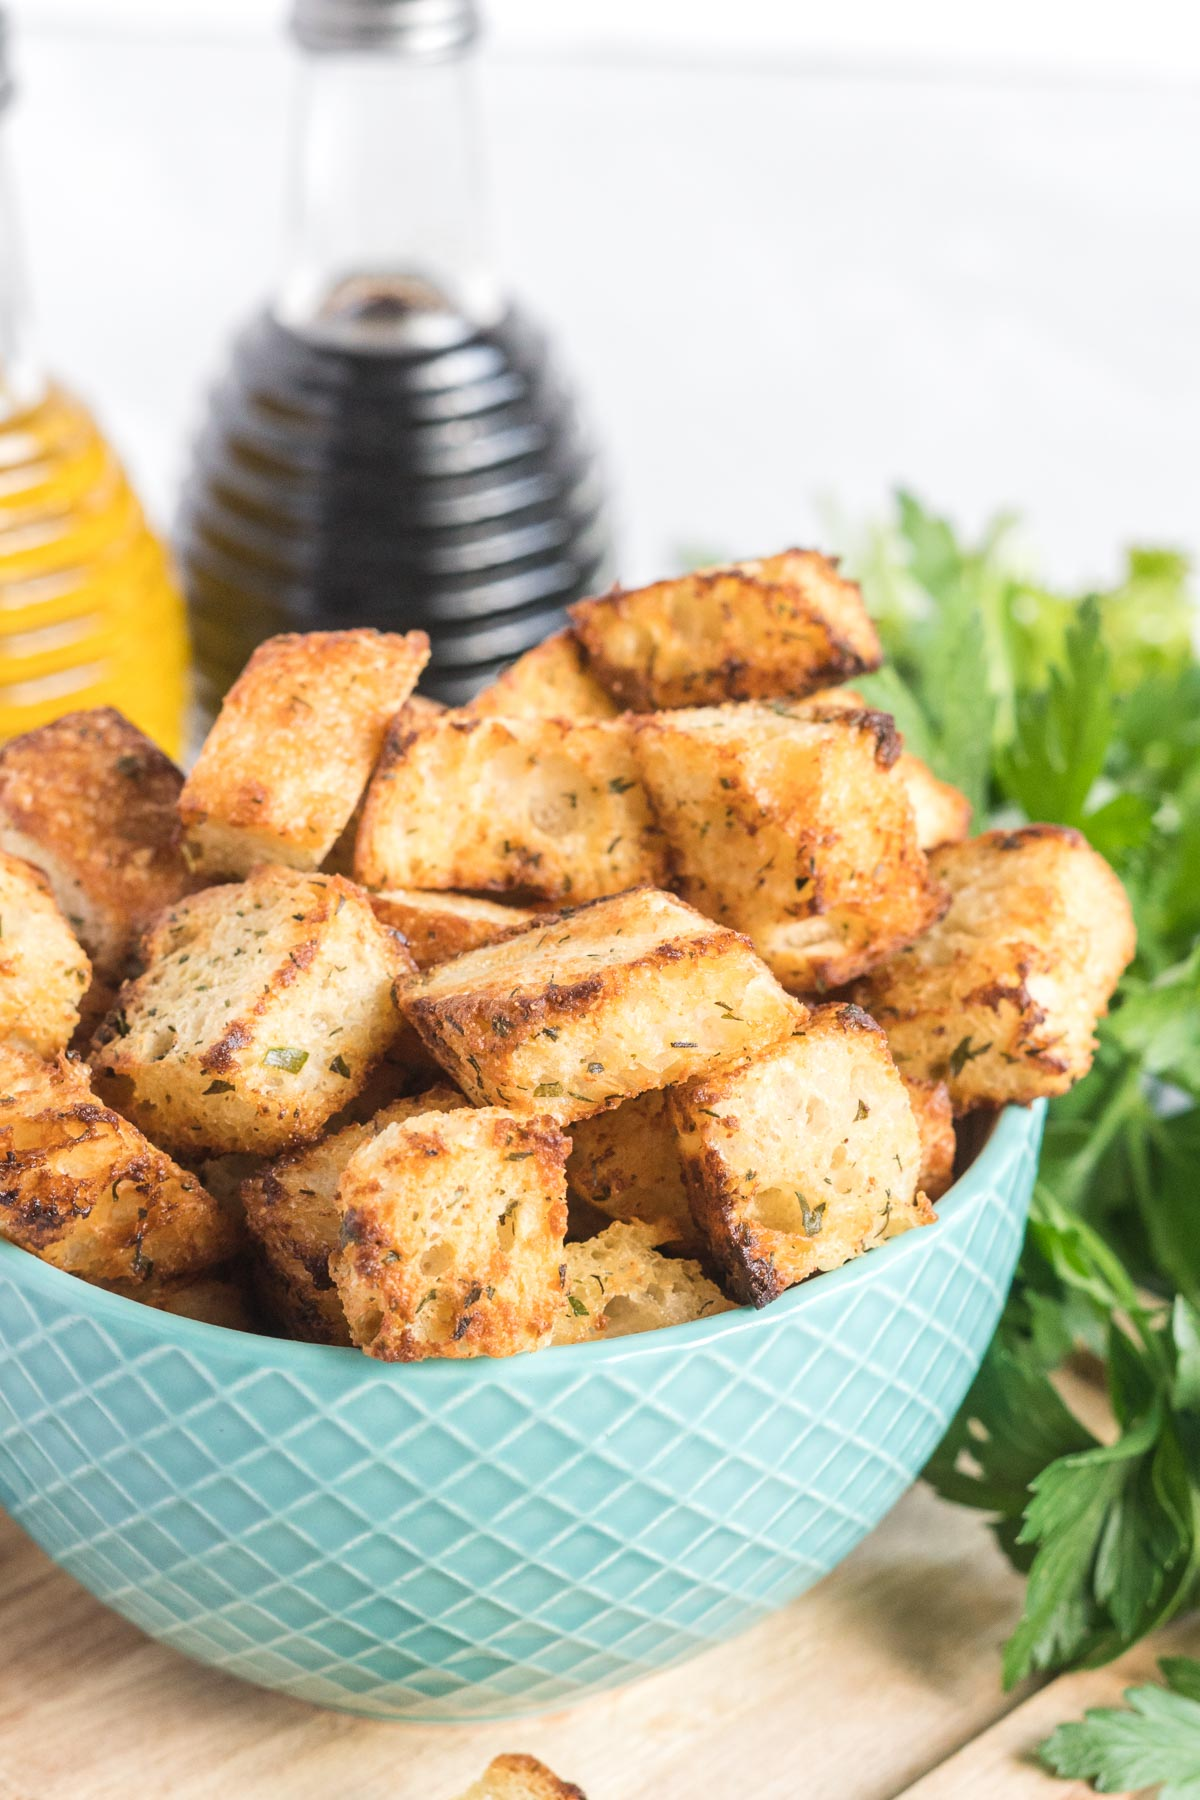 Croutons in a blue ceramic bowl, a bottle of balsamic vinegar and olive oil in the background.